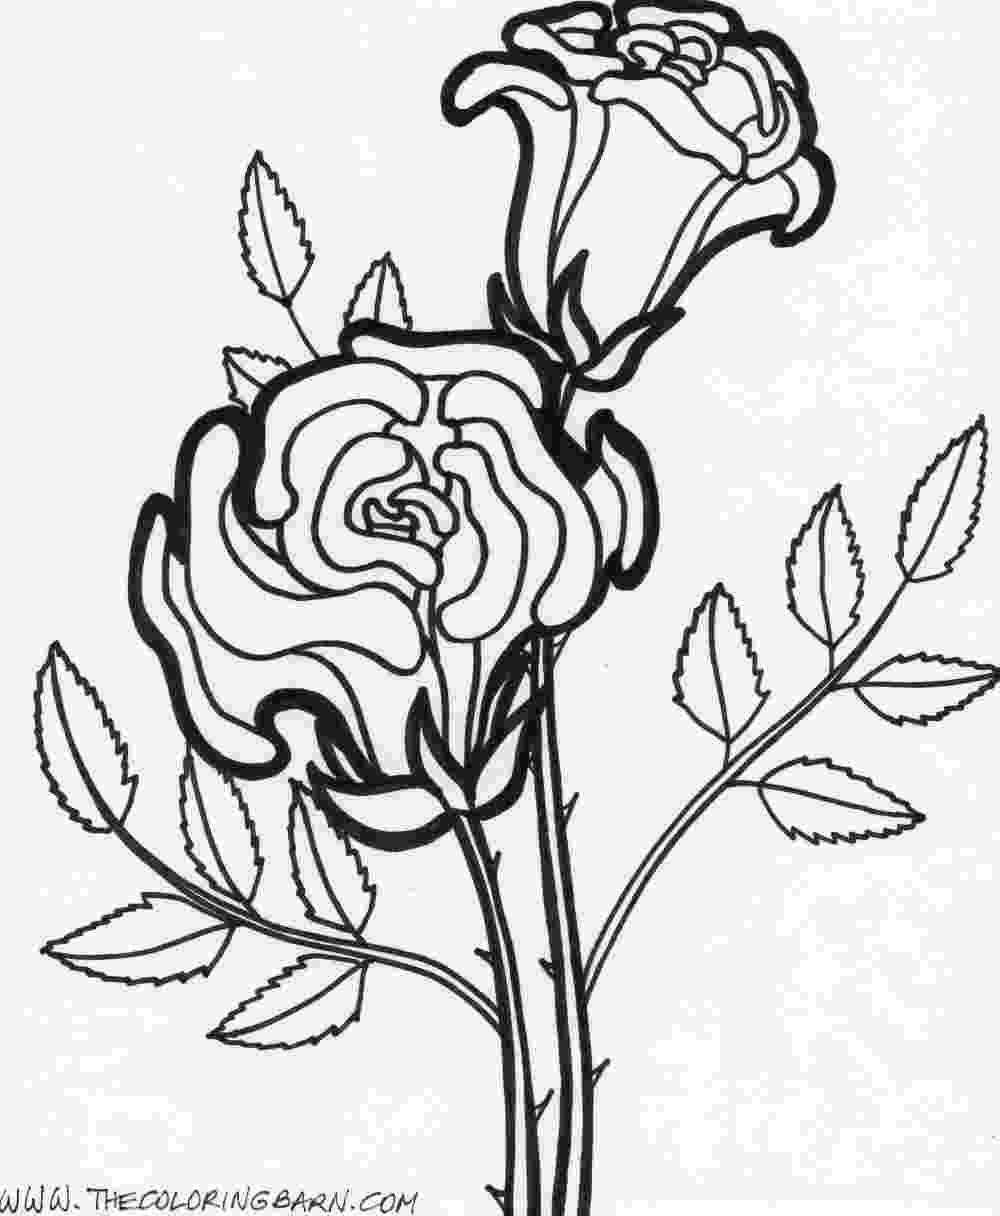 printable colouring flower pages coloring pages worksheets simple flower coloring pages pages printable flower colouring